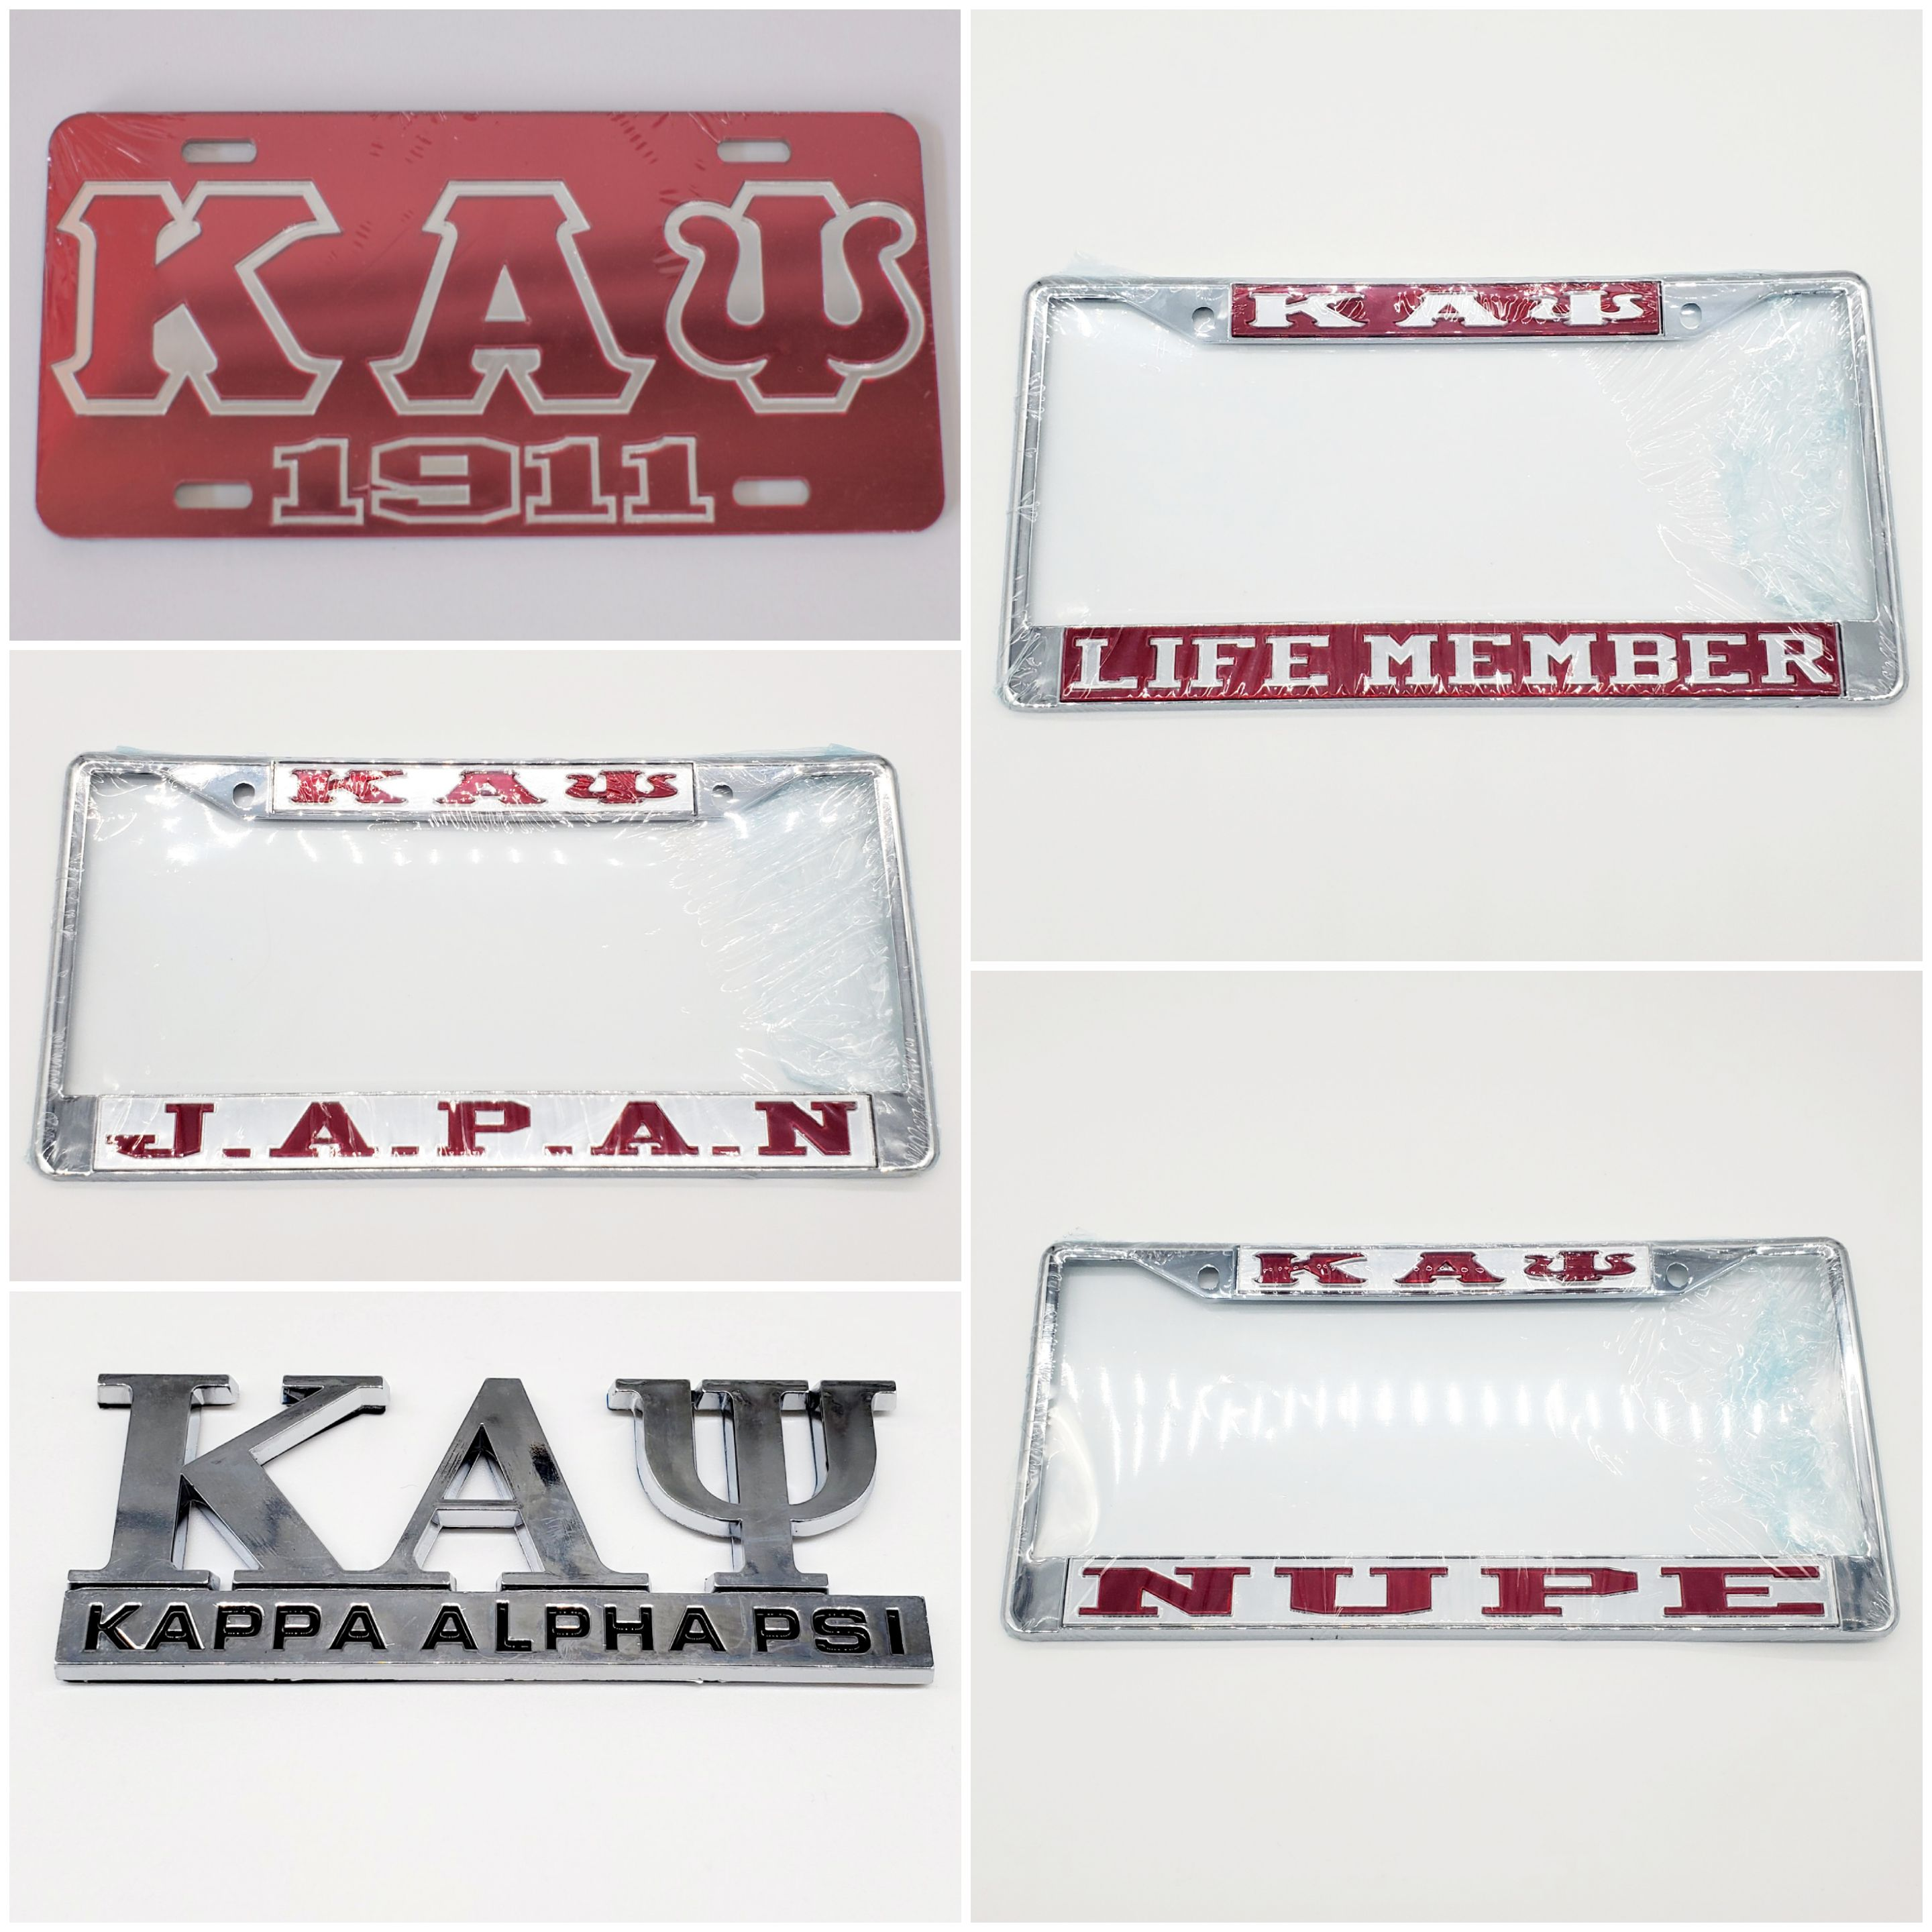 Shop Nupe car accessories